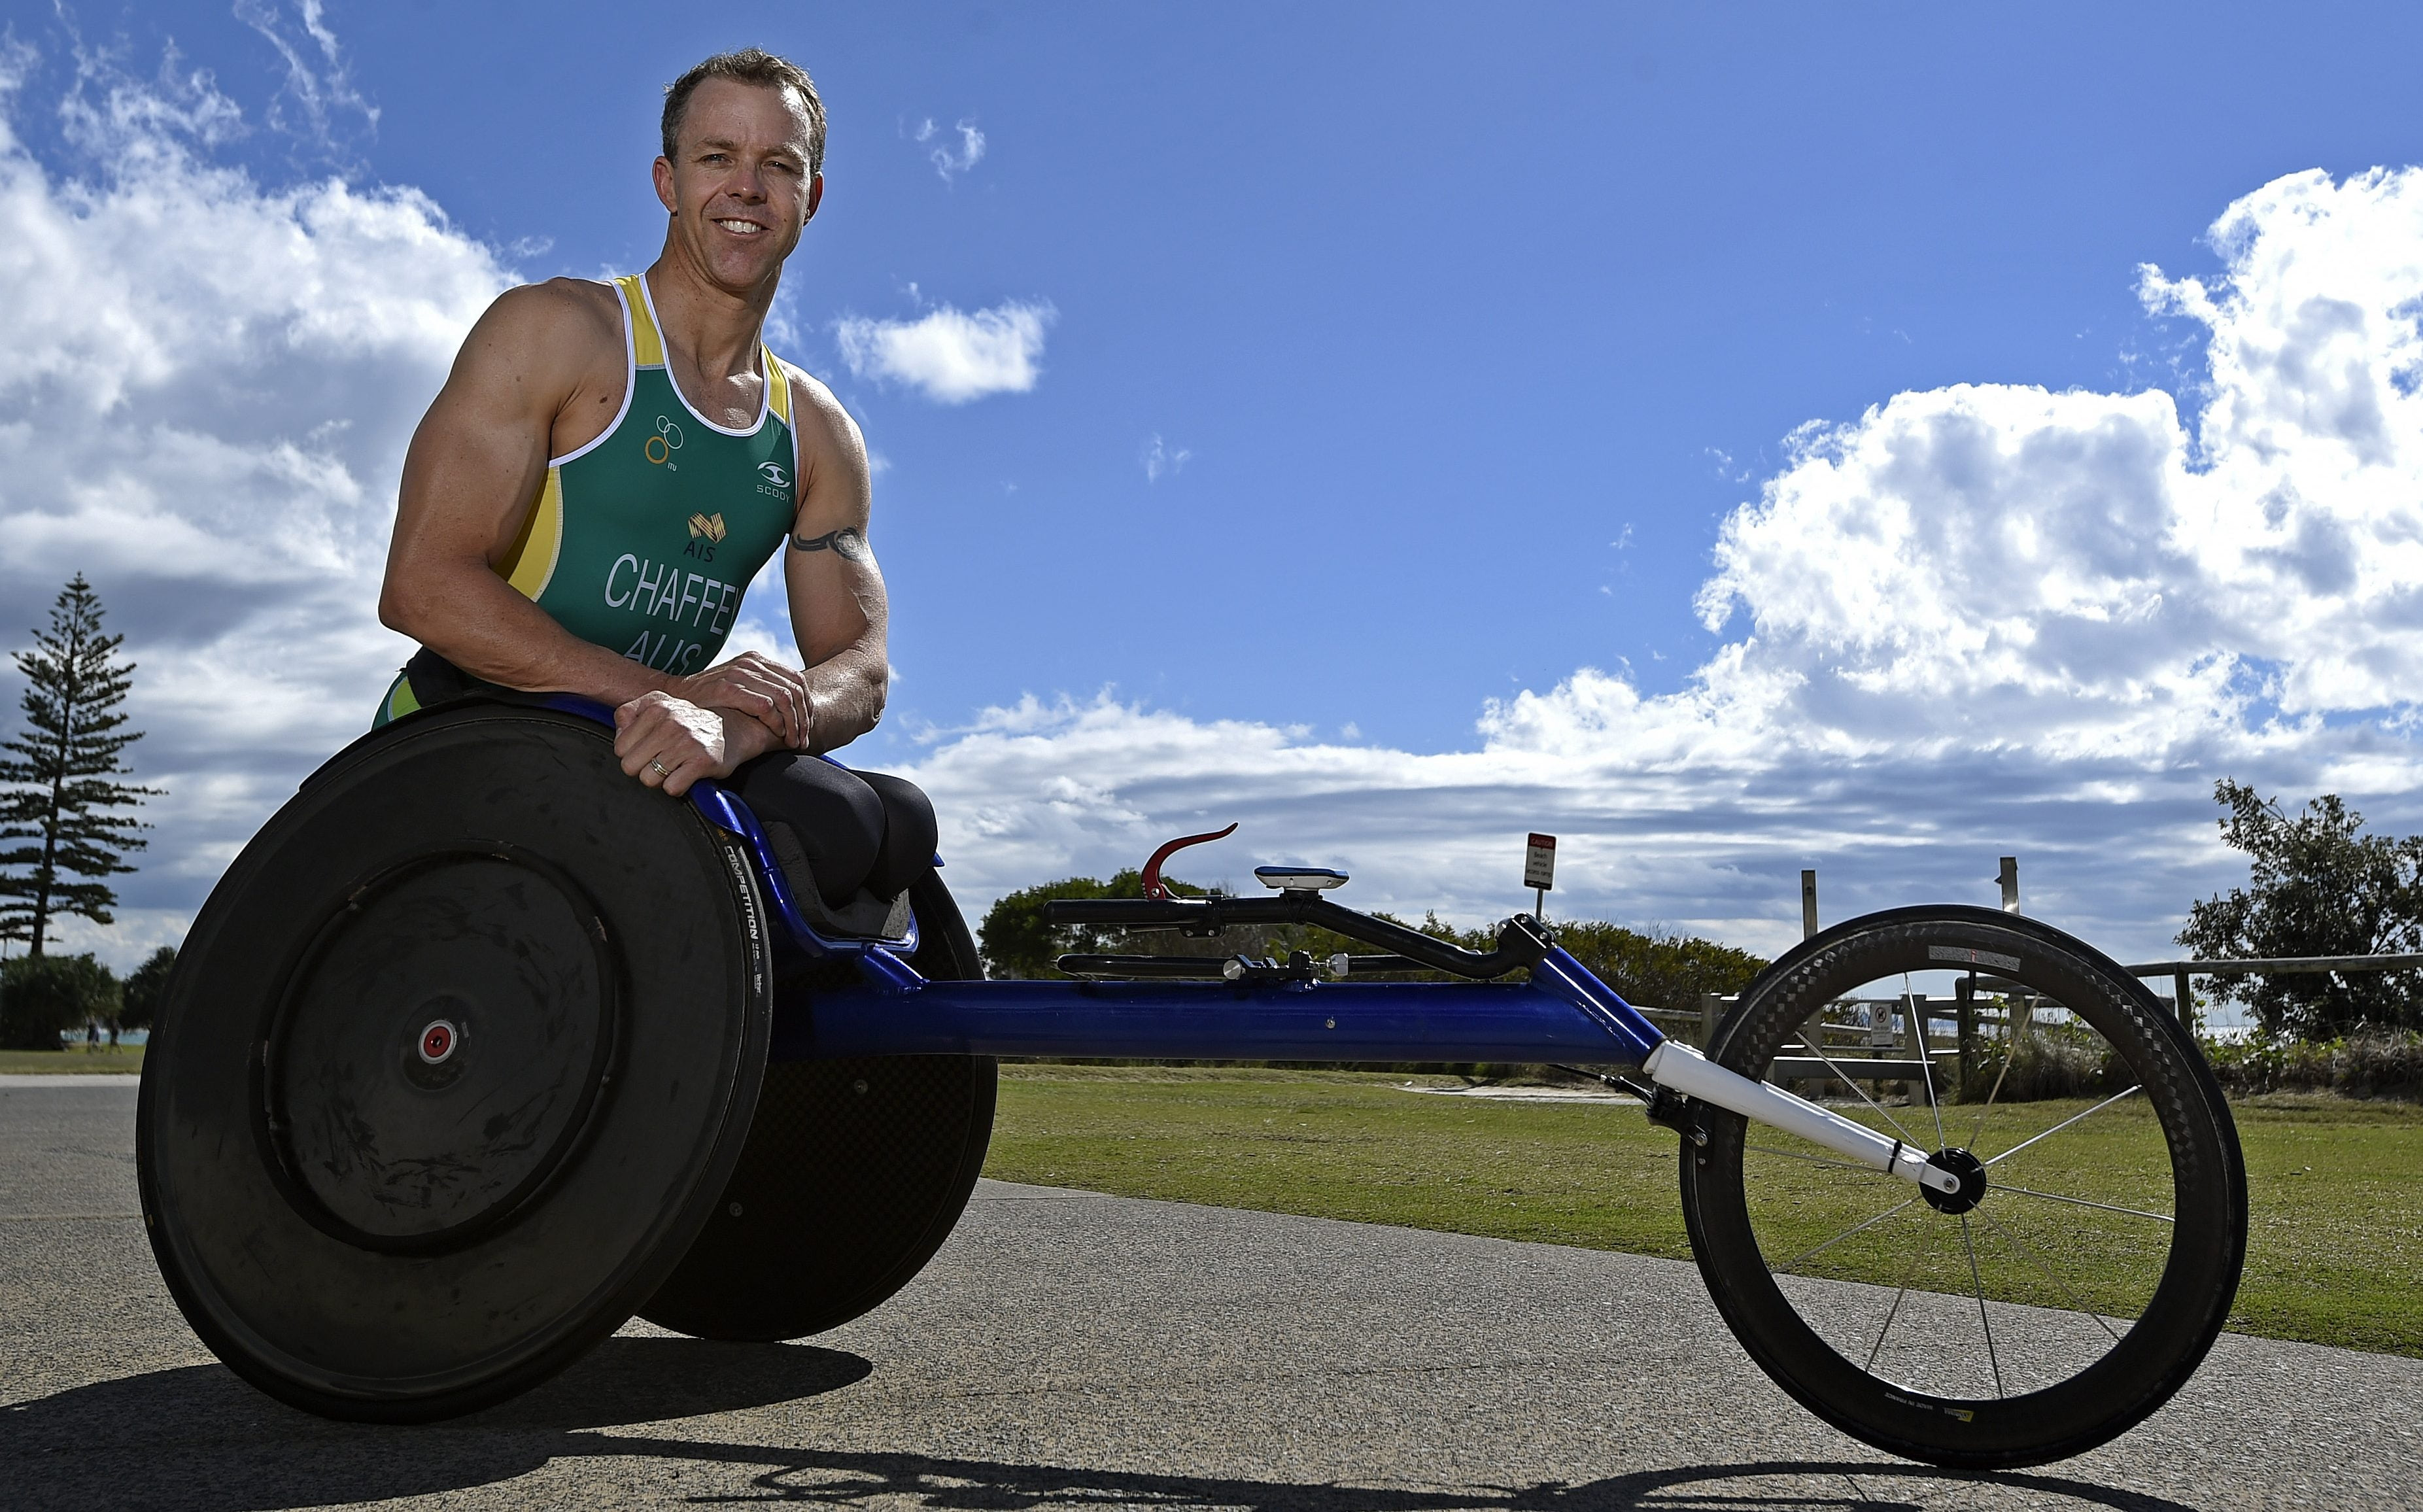 Para-triathletes line up for Gold Coast World Championships